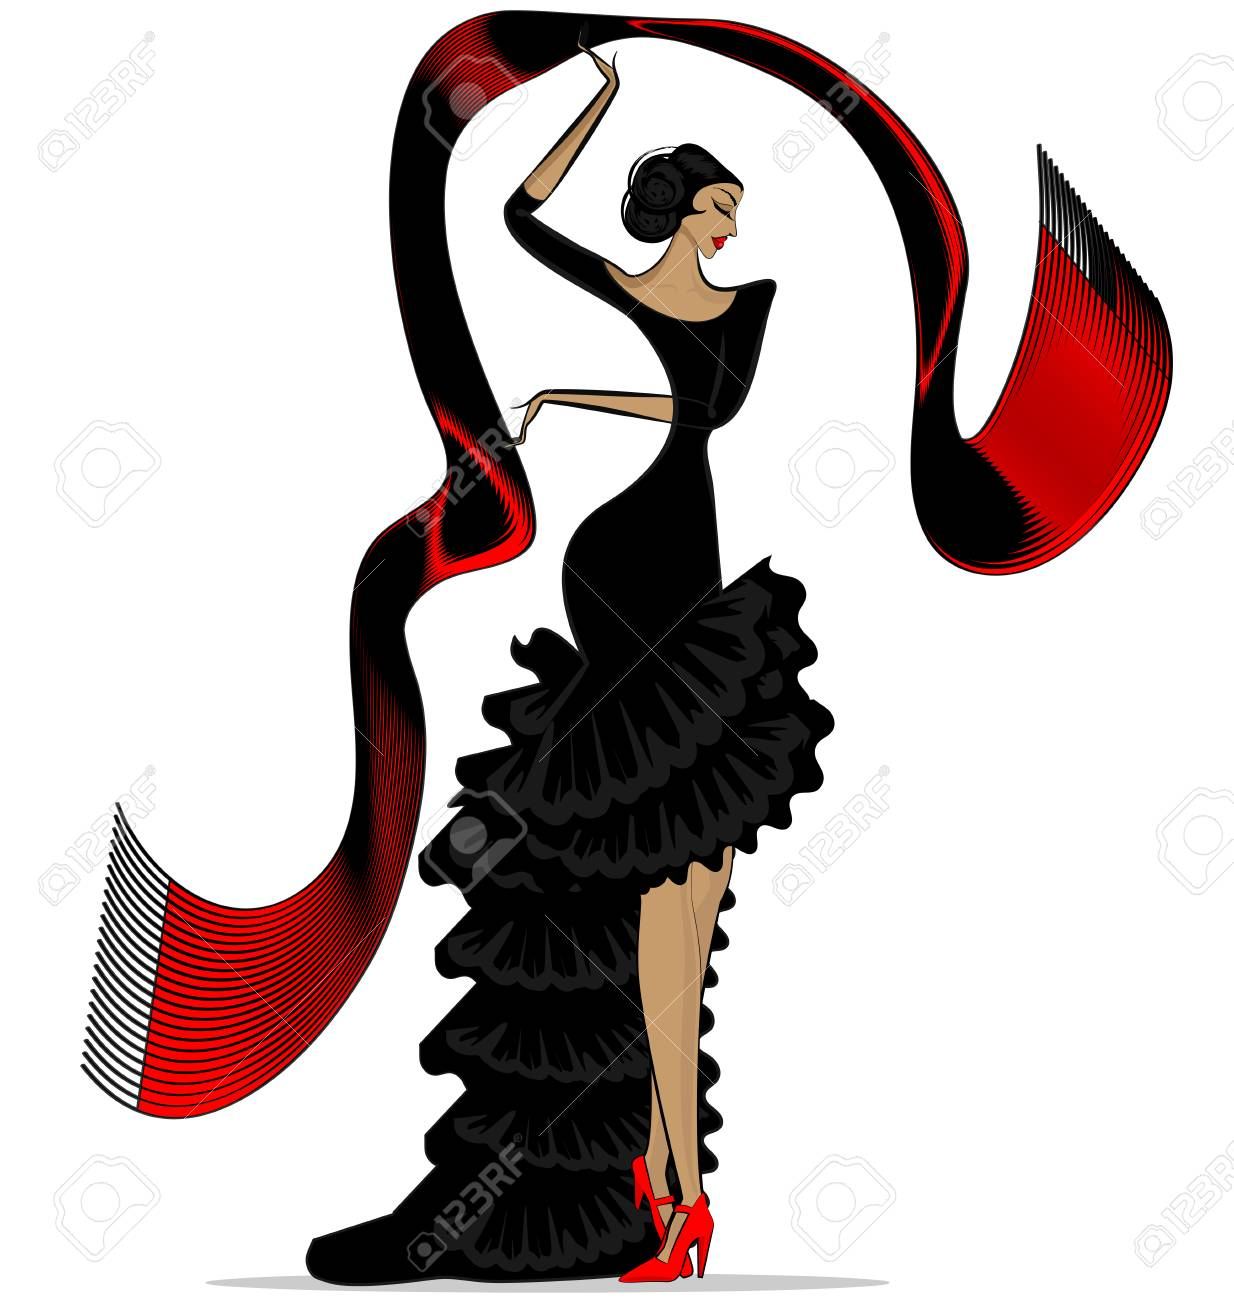 white background and abstract image of spanish dancer in black rh 123rf com National Hug Day Clip Art Clip Art Hats Scarves Mittens